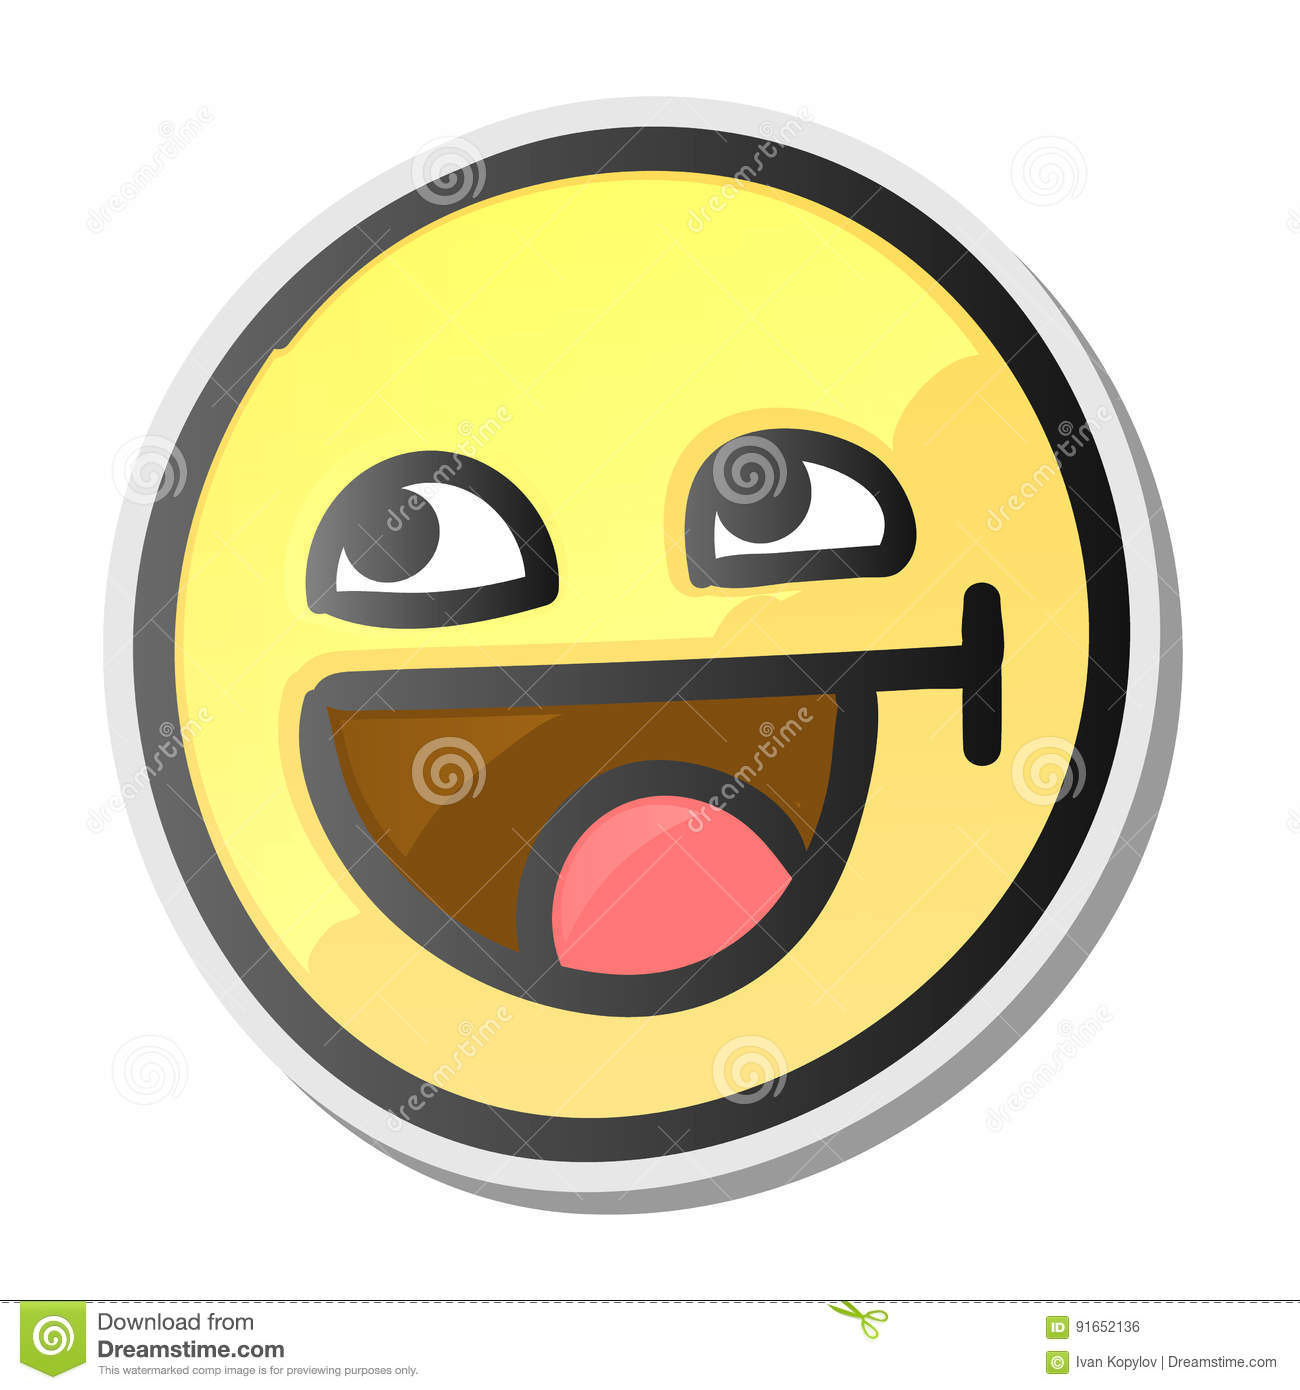 Rub Tubes Emoticones moreover Smiling Emoticon Open Mouth Smiling Eyes likewise Healthy Leafy Tree Sleeping Soundly Emoji in addition Smiling Face With Sunglasses together with Emoji English Dictionary Emoji Faces Meaning Explained. on closed mouth smiley